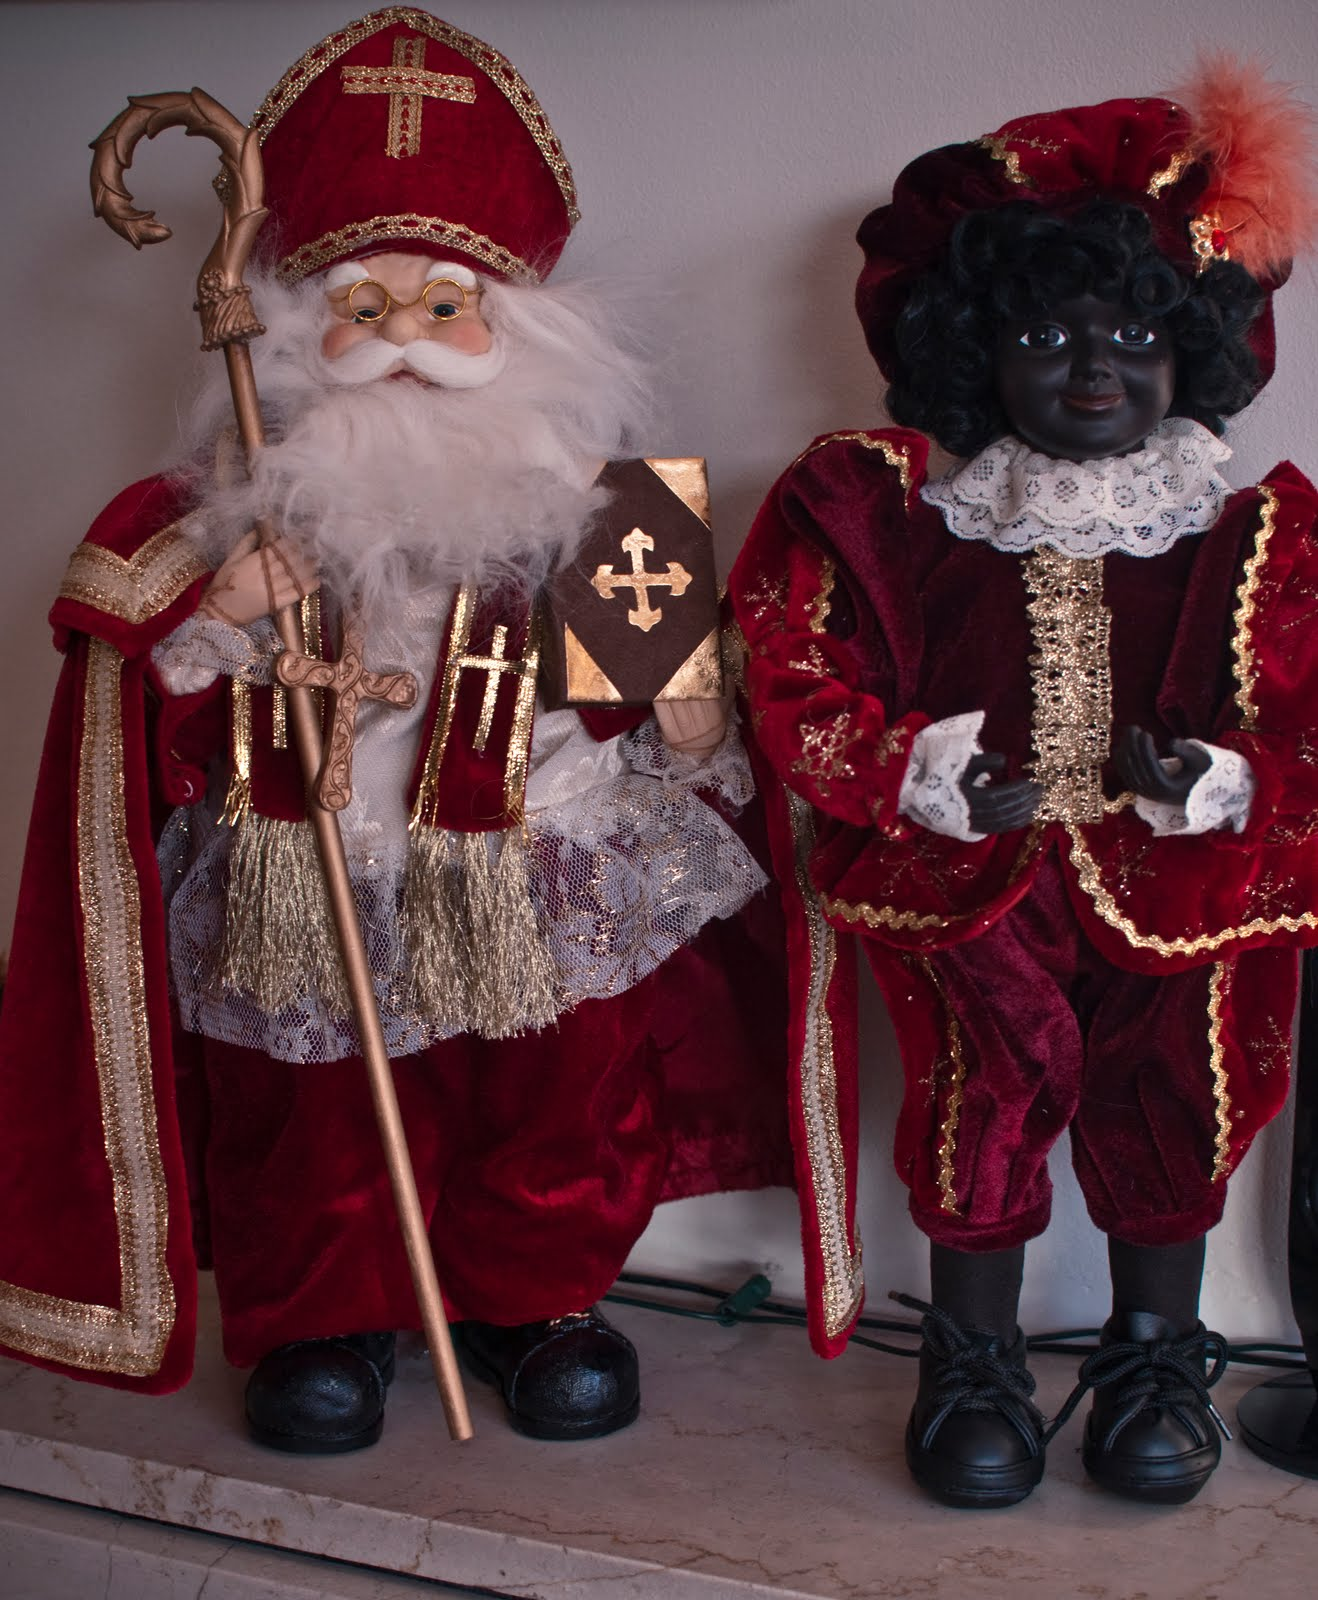 Vaak Expats In Holland: Sinterklaas and Zwarte Piet... the strangest &HO97